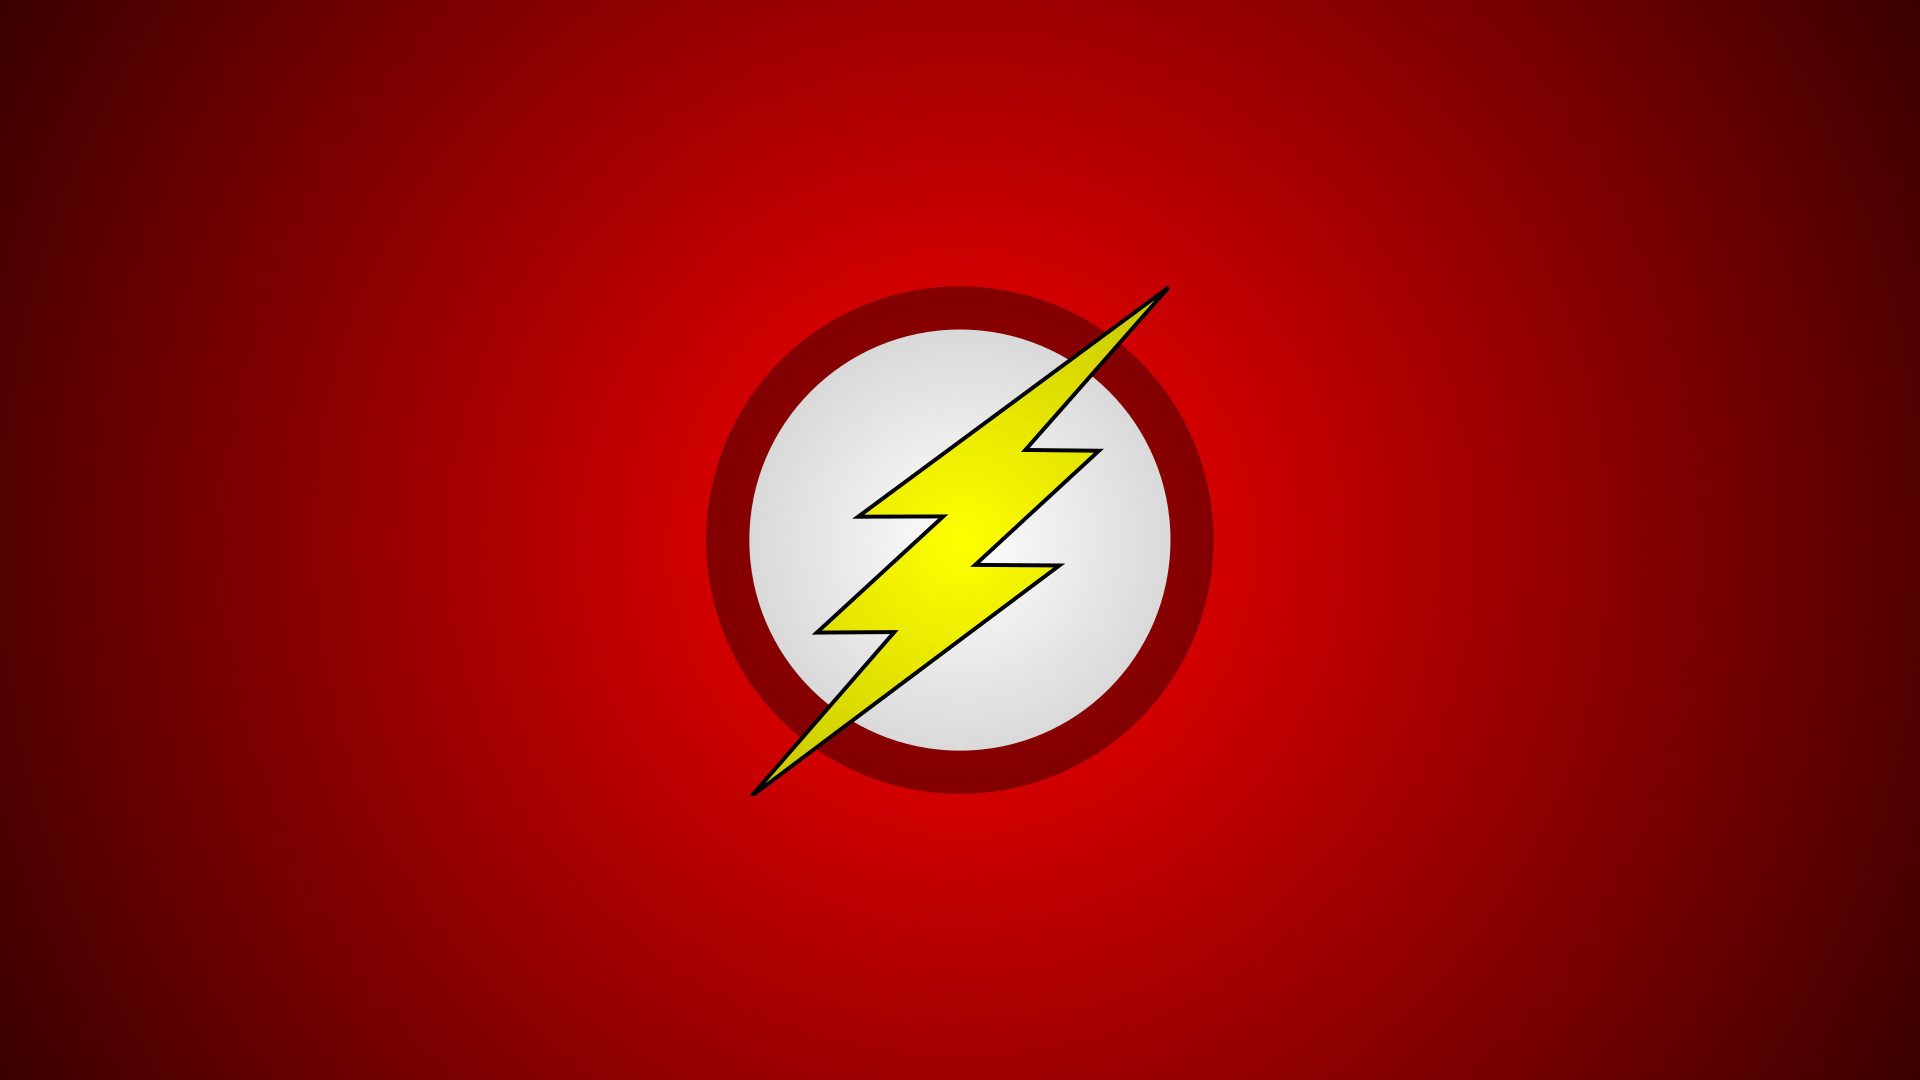 The Flash and The Reverse Flash Wallpapers – Album on Imgur